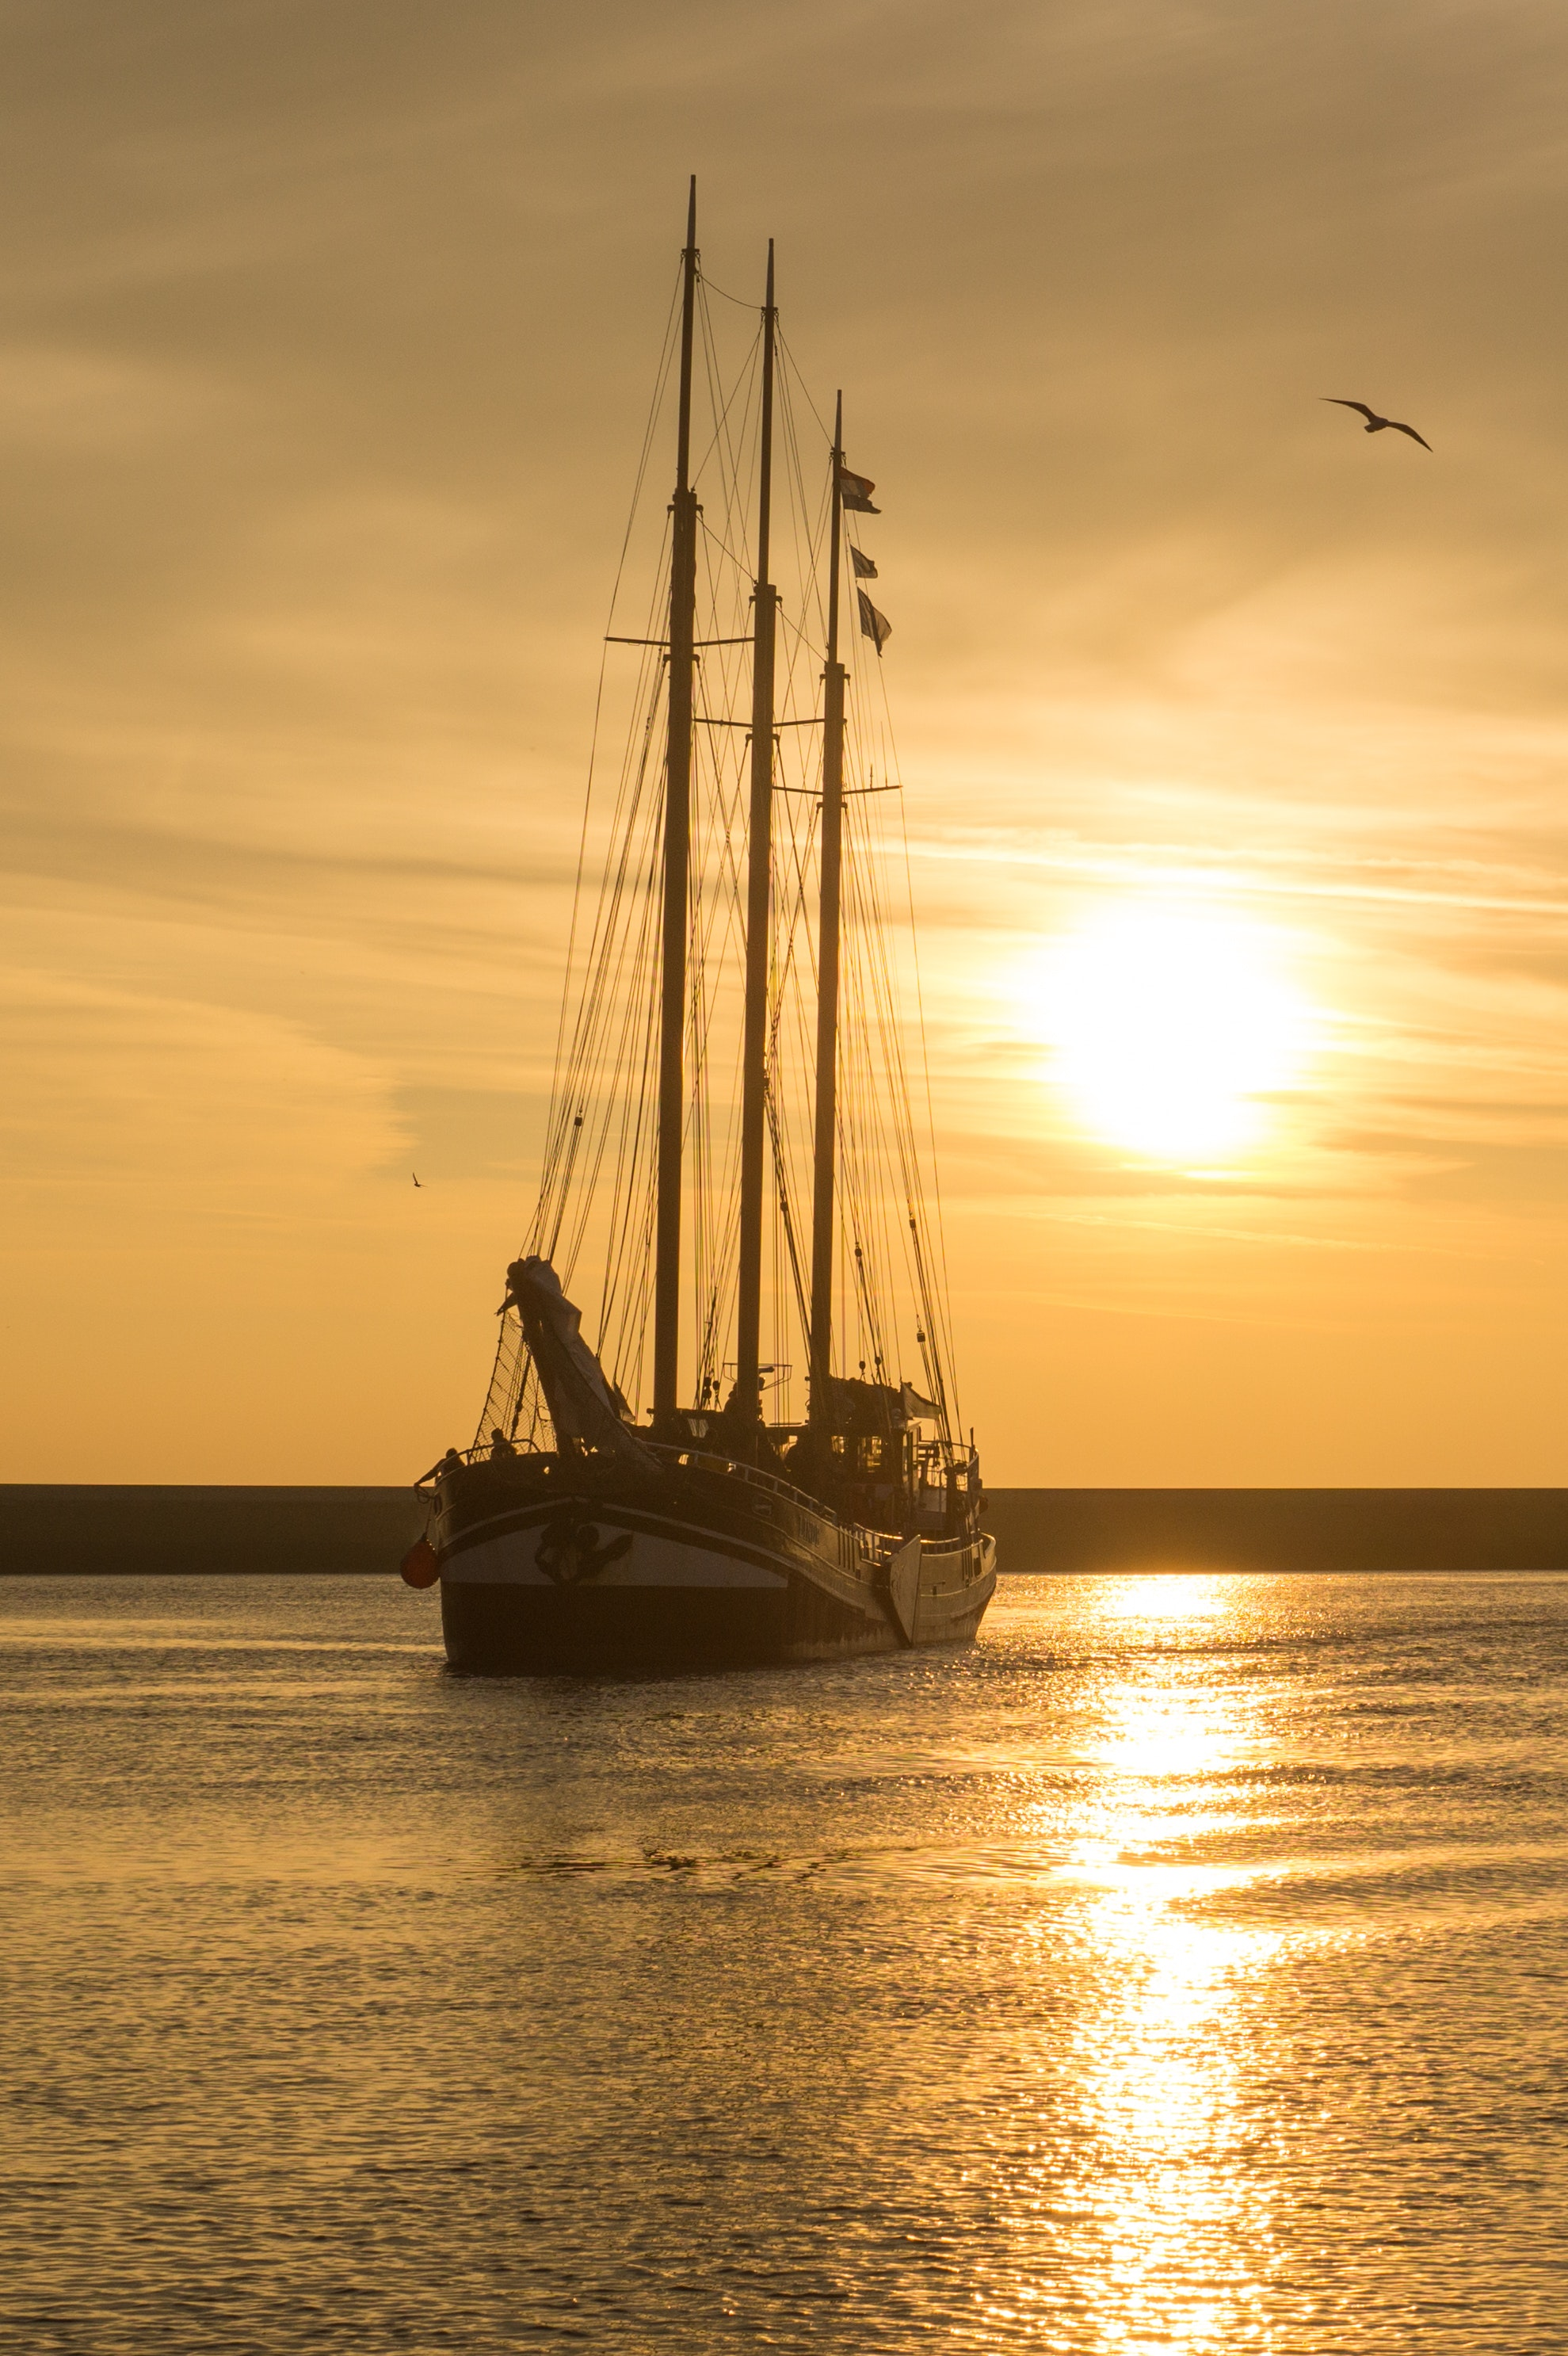 sailboat on body of water during sunset 183 free stock photo